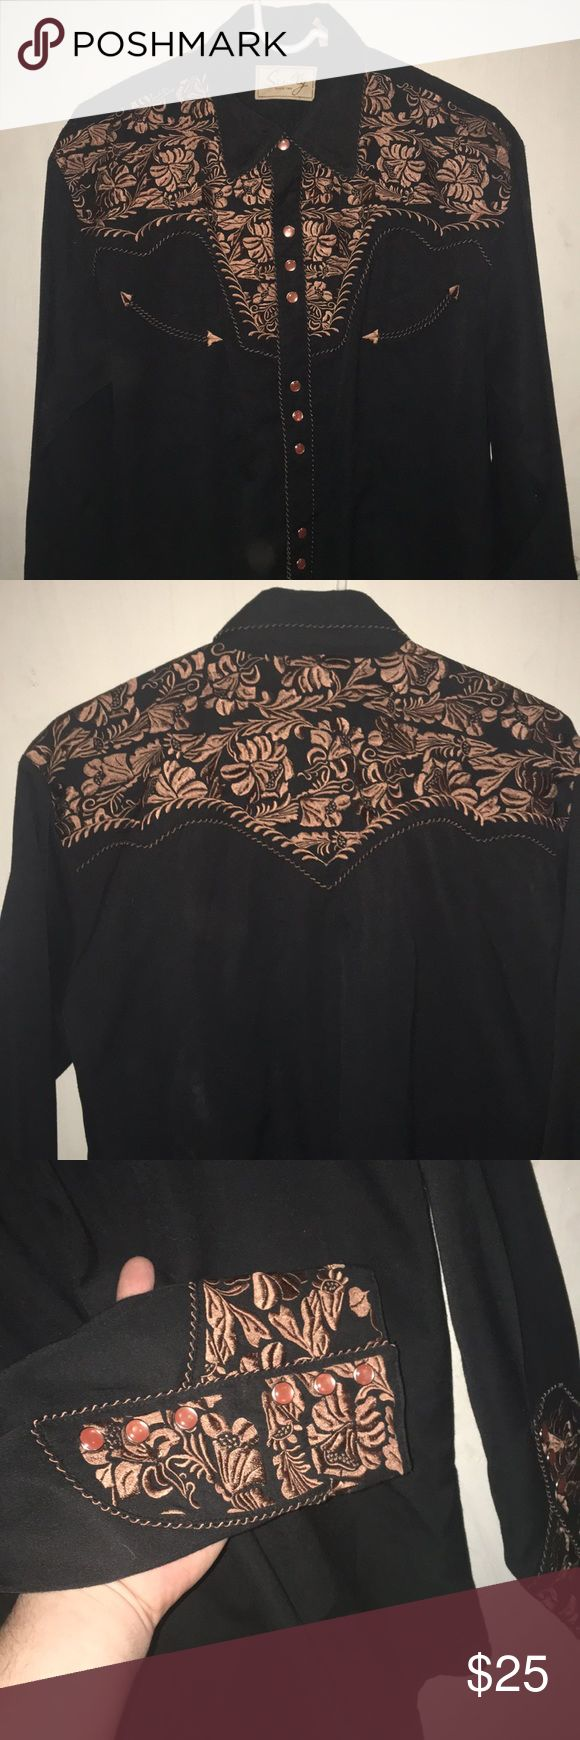 Vintage Western men's shirt Embroidered Scully branded men's western shirt. Needs dry cleaned but in great condition. Scully Shirts Dress Shirts